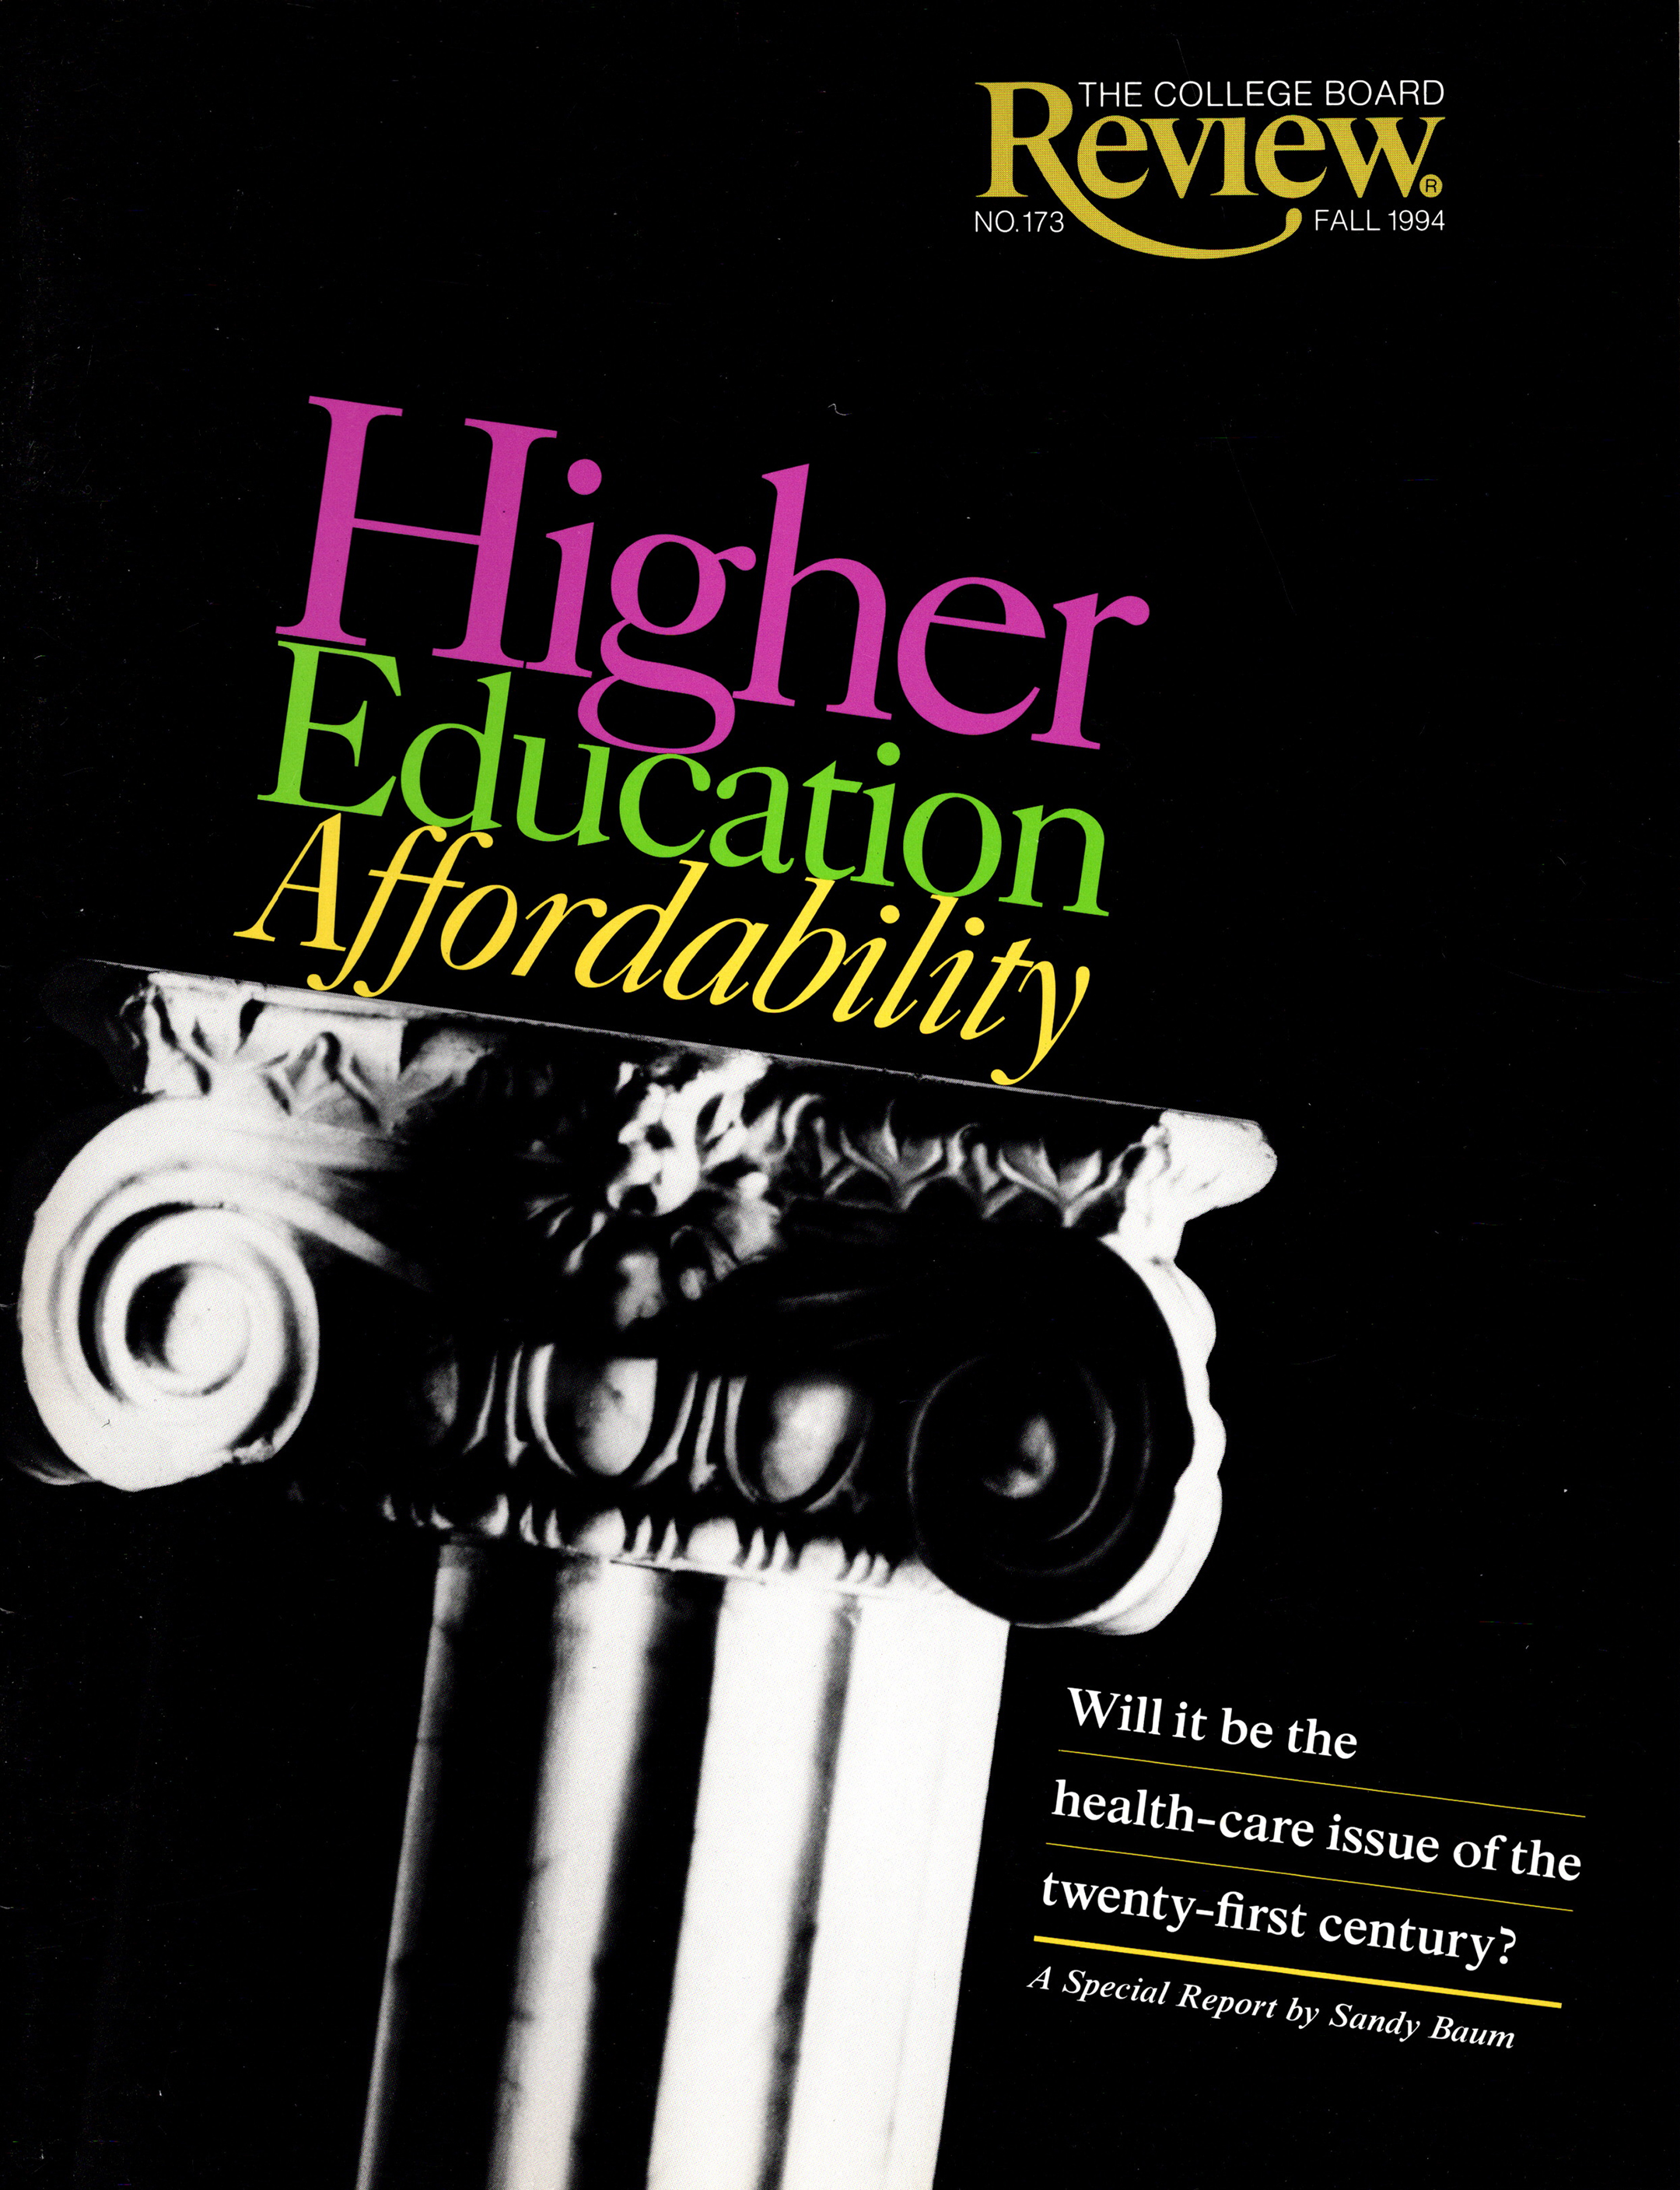 the cover of the fall 1994 issue of the college board review